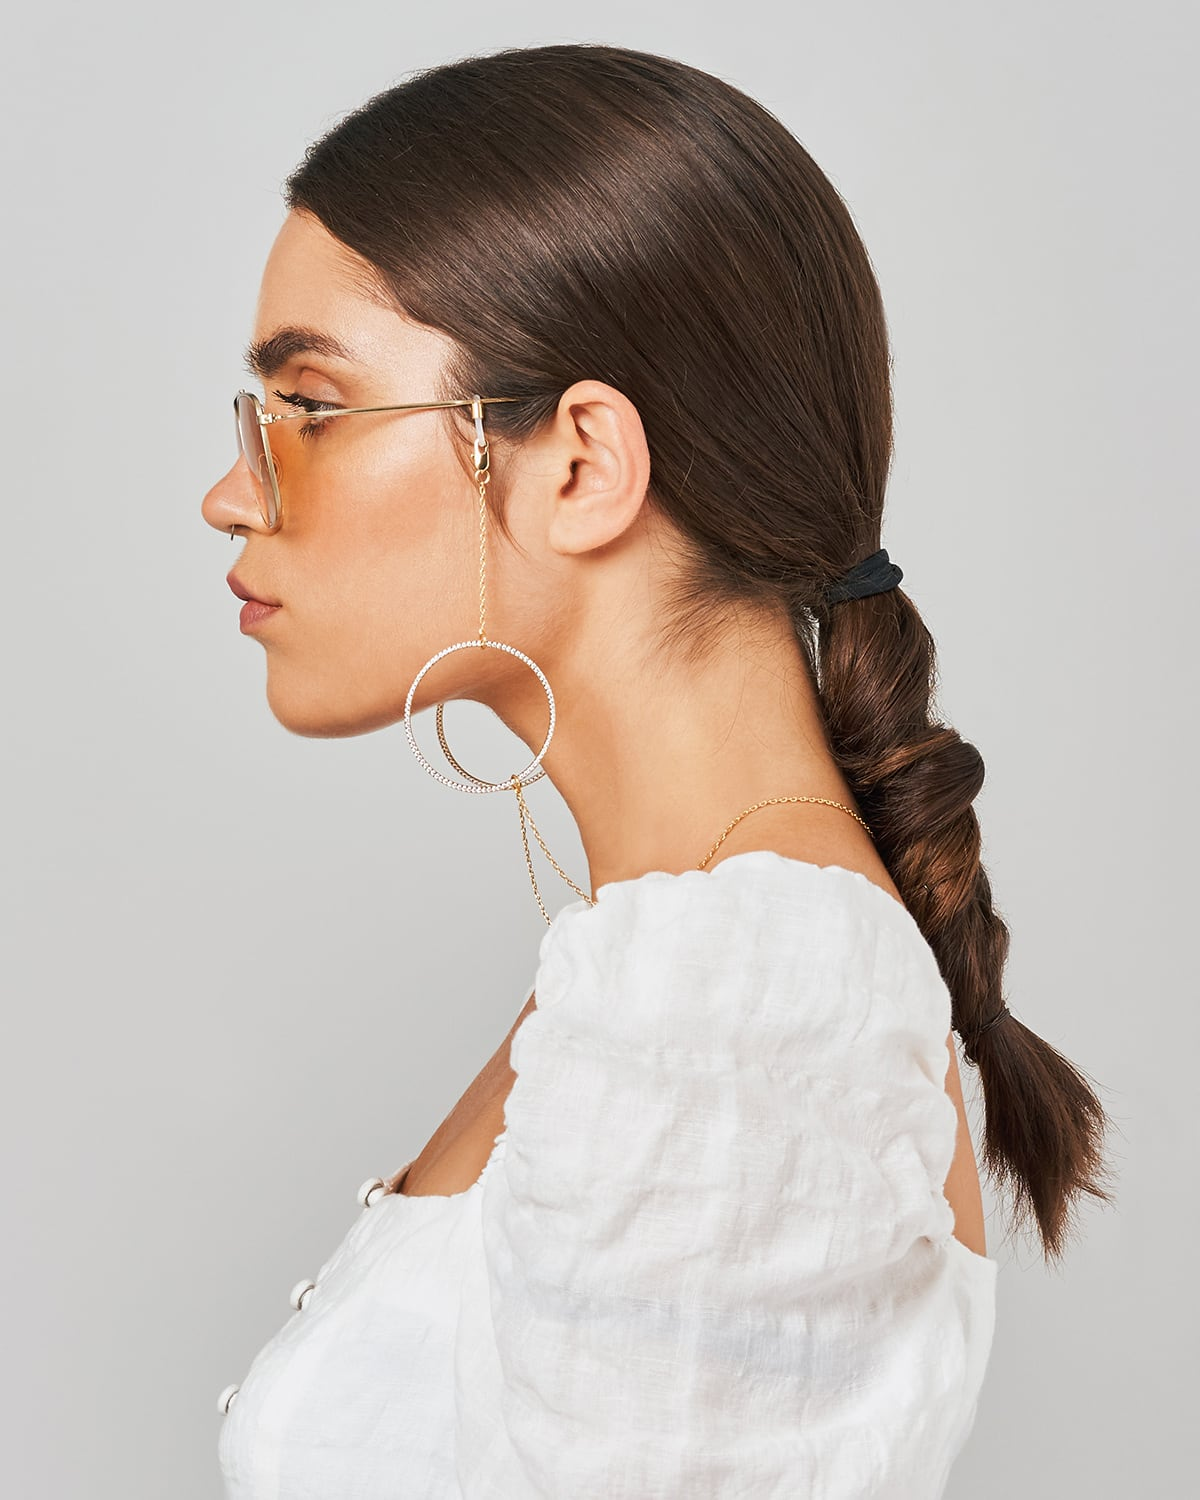 Gorgeous womens accessories fashion photography by London commercial photographer Ira Giorgetti